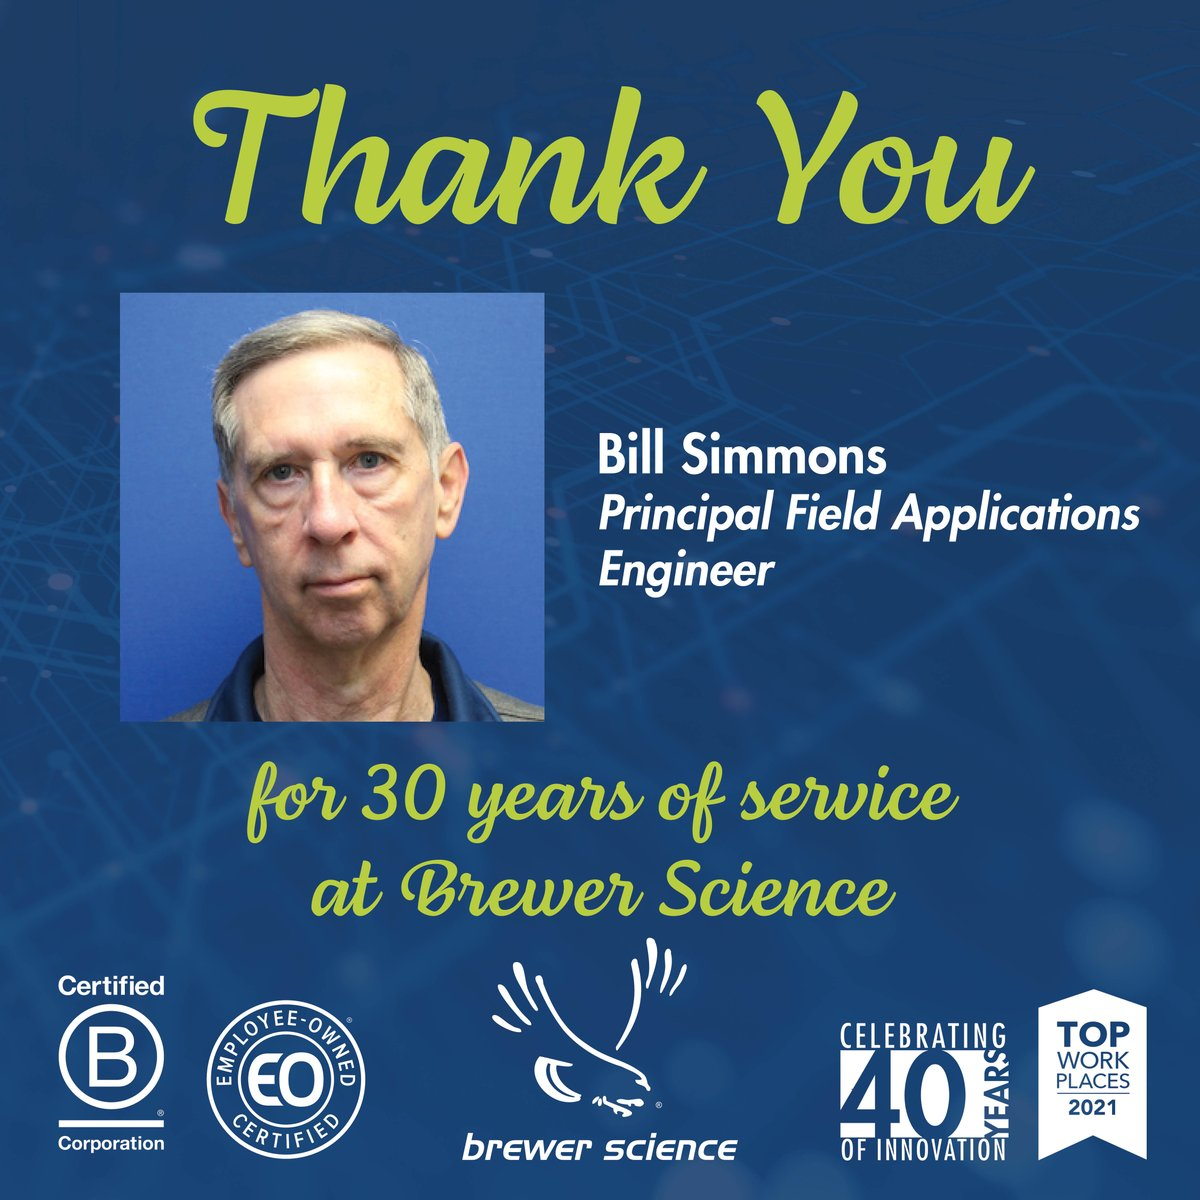 test Twitter Media - Today, we would like to congratulate Bill Simmons for 30 years of service at Brewer Science. Thank you, Bill, for your dedication and hard work. #EmployeeAppreciation #EmployeeAnniversary #WorkAnniversary #EmployeeOwned #WeAreBCorp #BCorps #TopWorkplace #CareerGoals #Careers https://t.co/VPPuNpd4OY